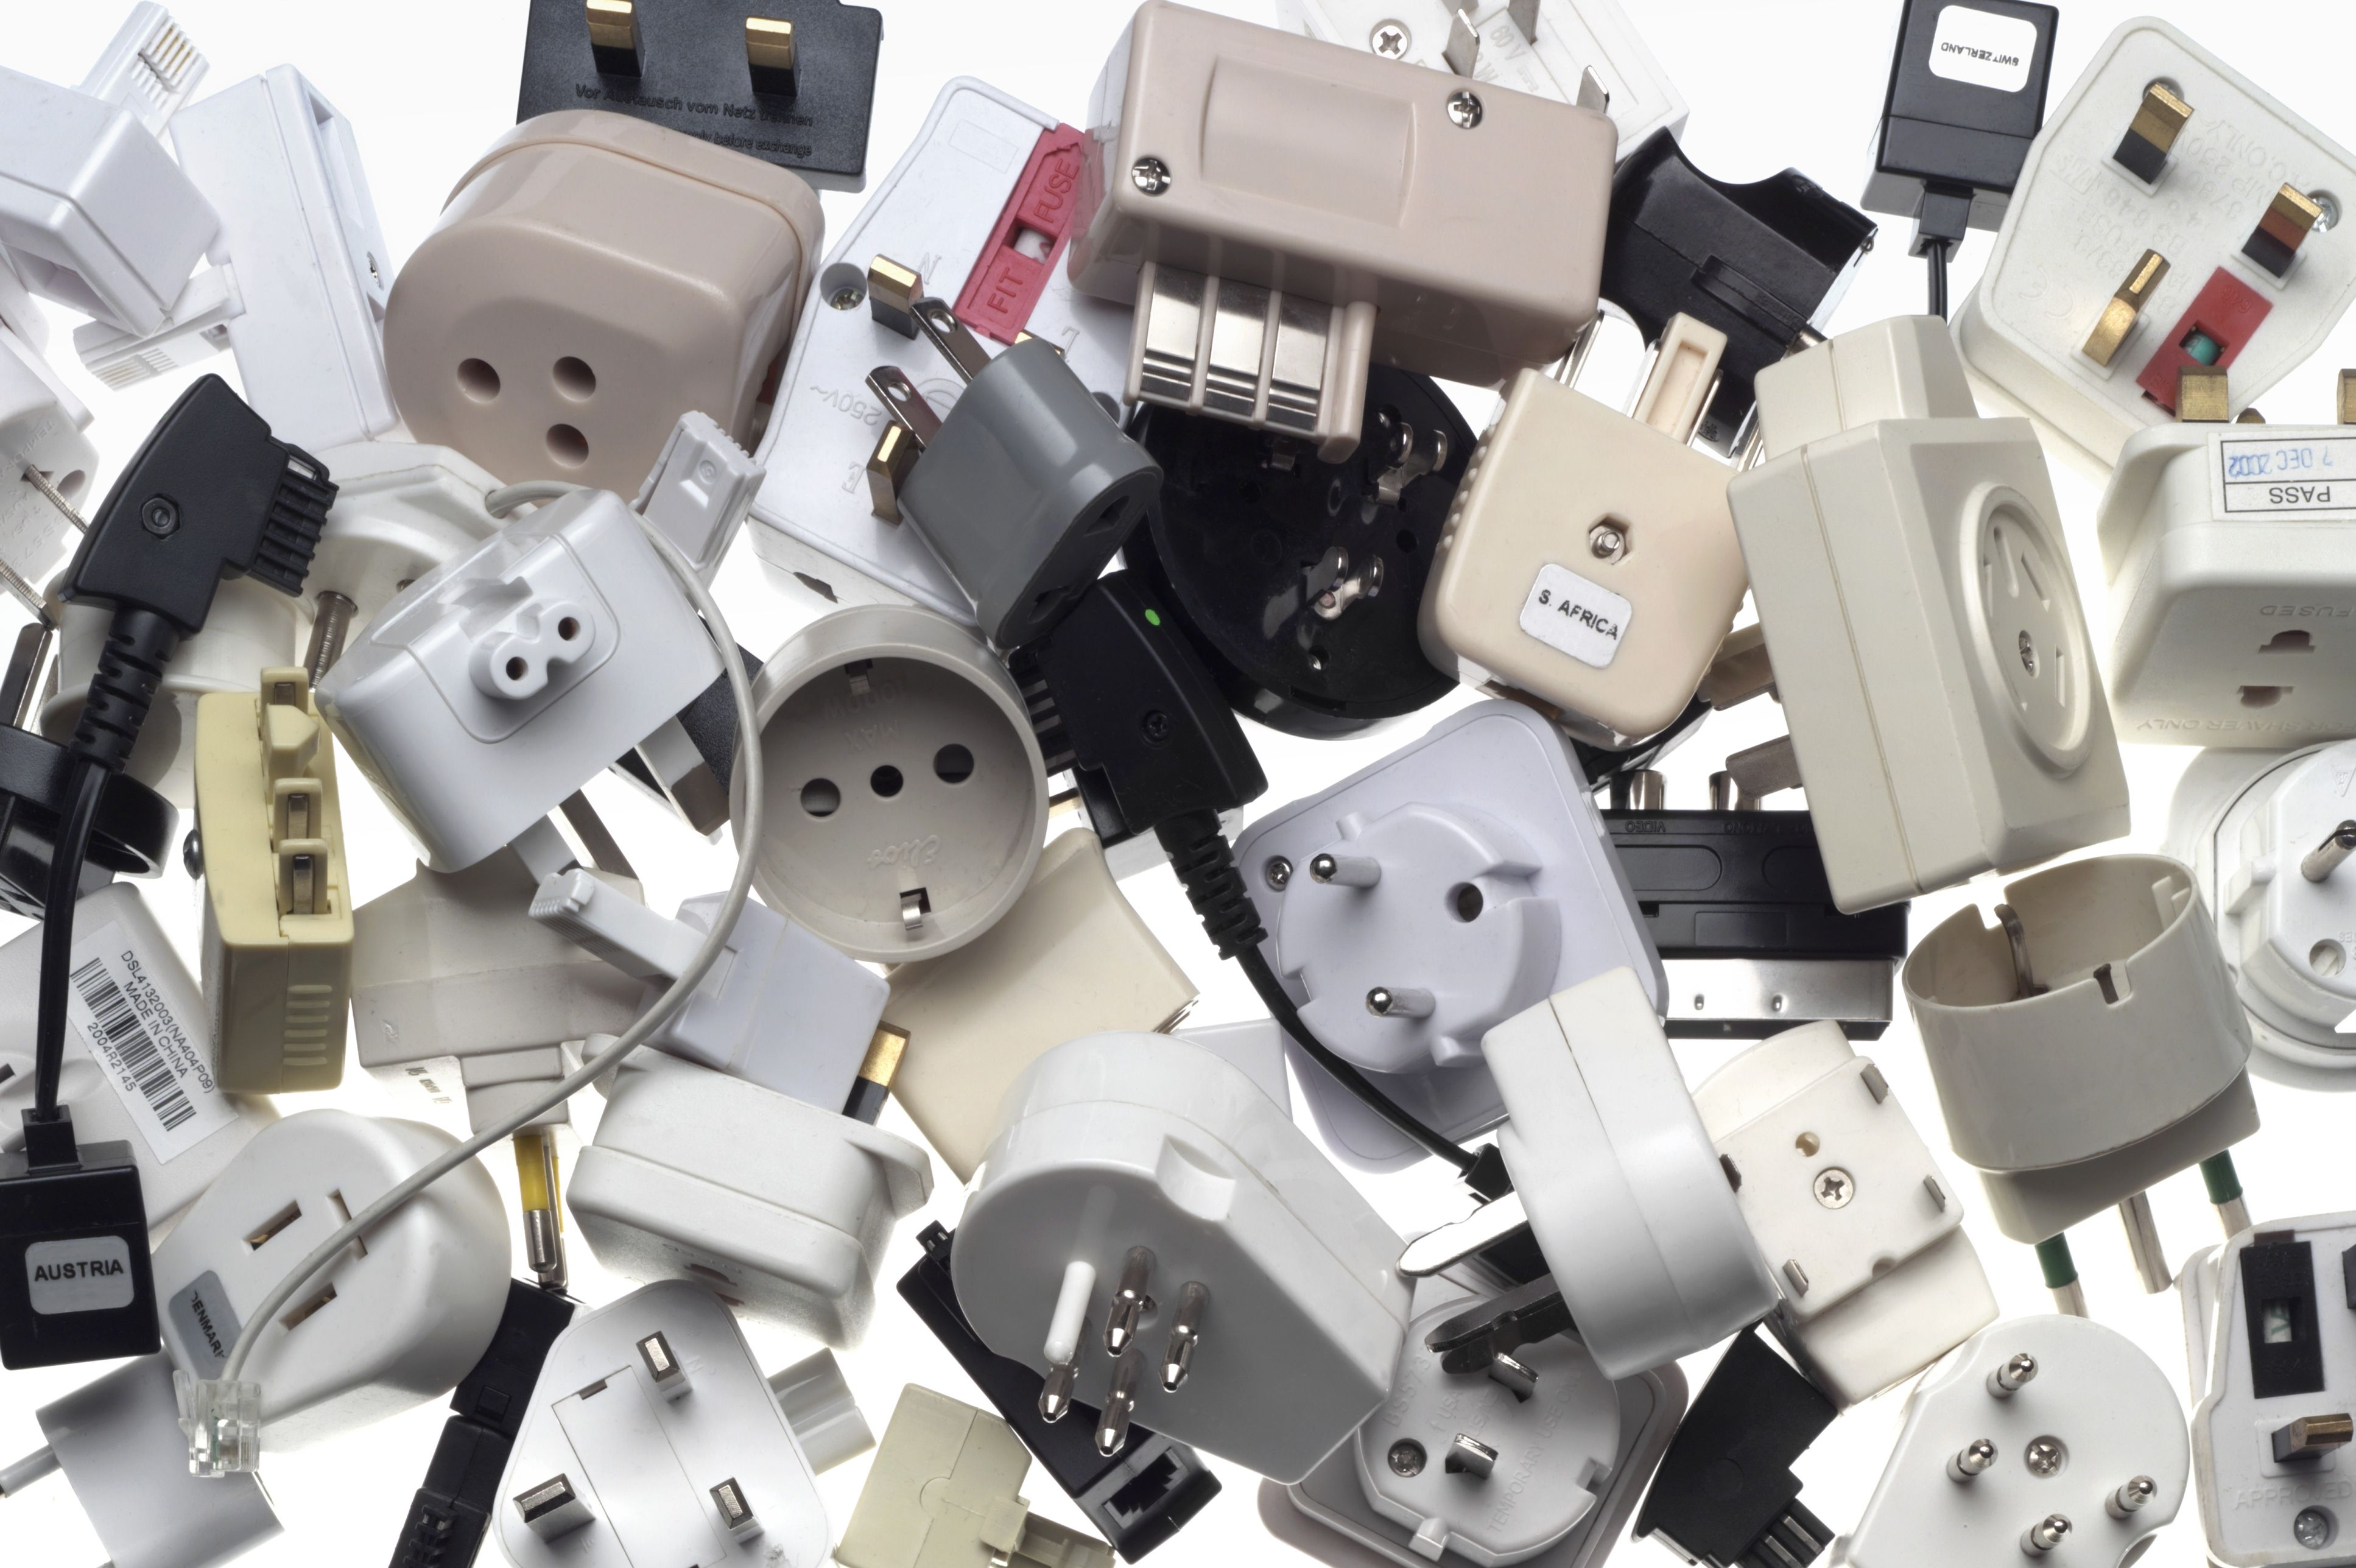 Converters and plug adapters allow you to use your electronic devices anywhere.